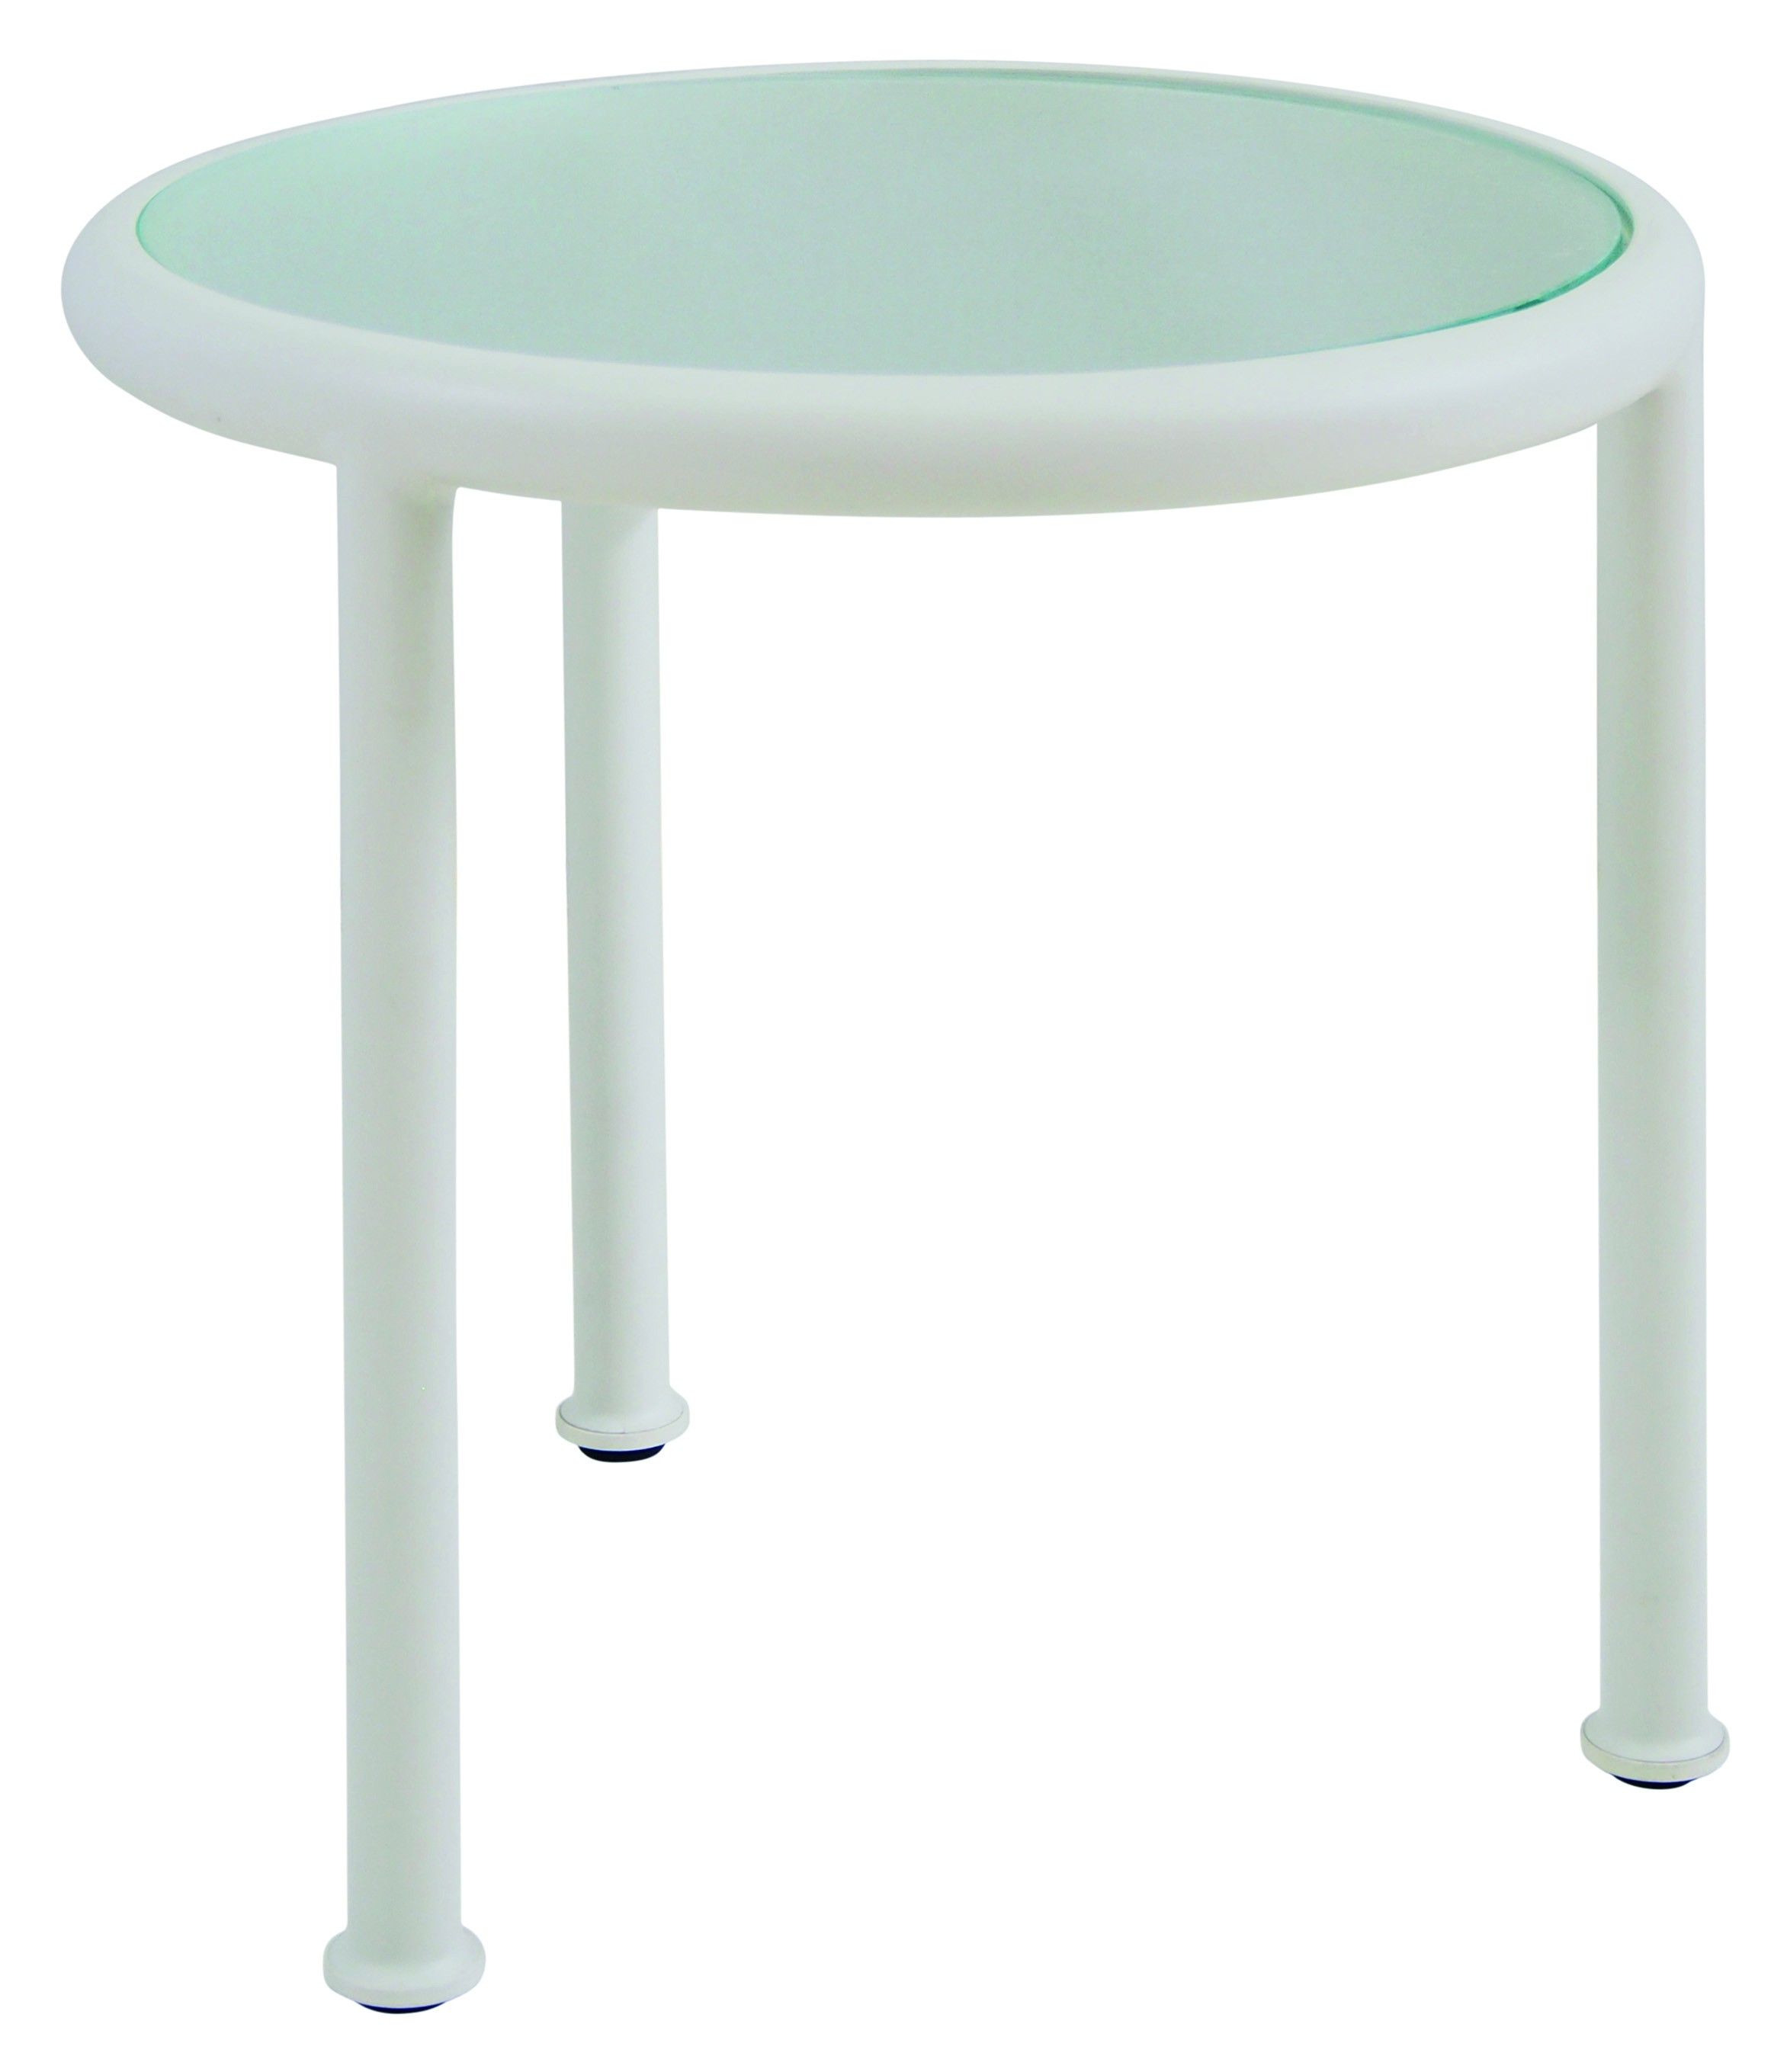 Table basse ronde dock 48 de emu 2 coloris for 2 table basse ronde